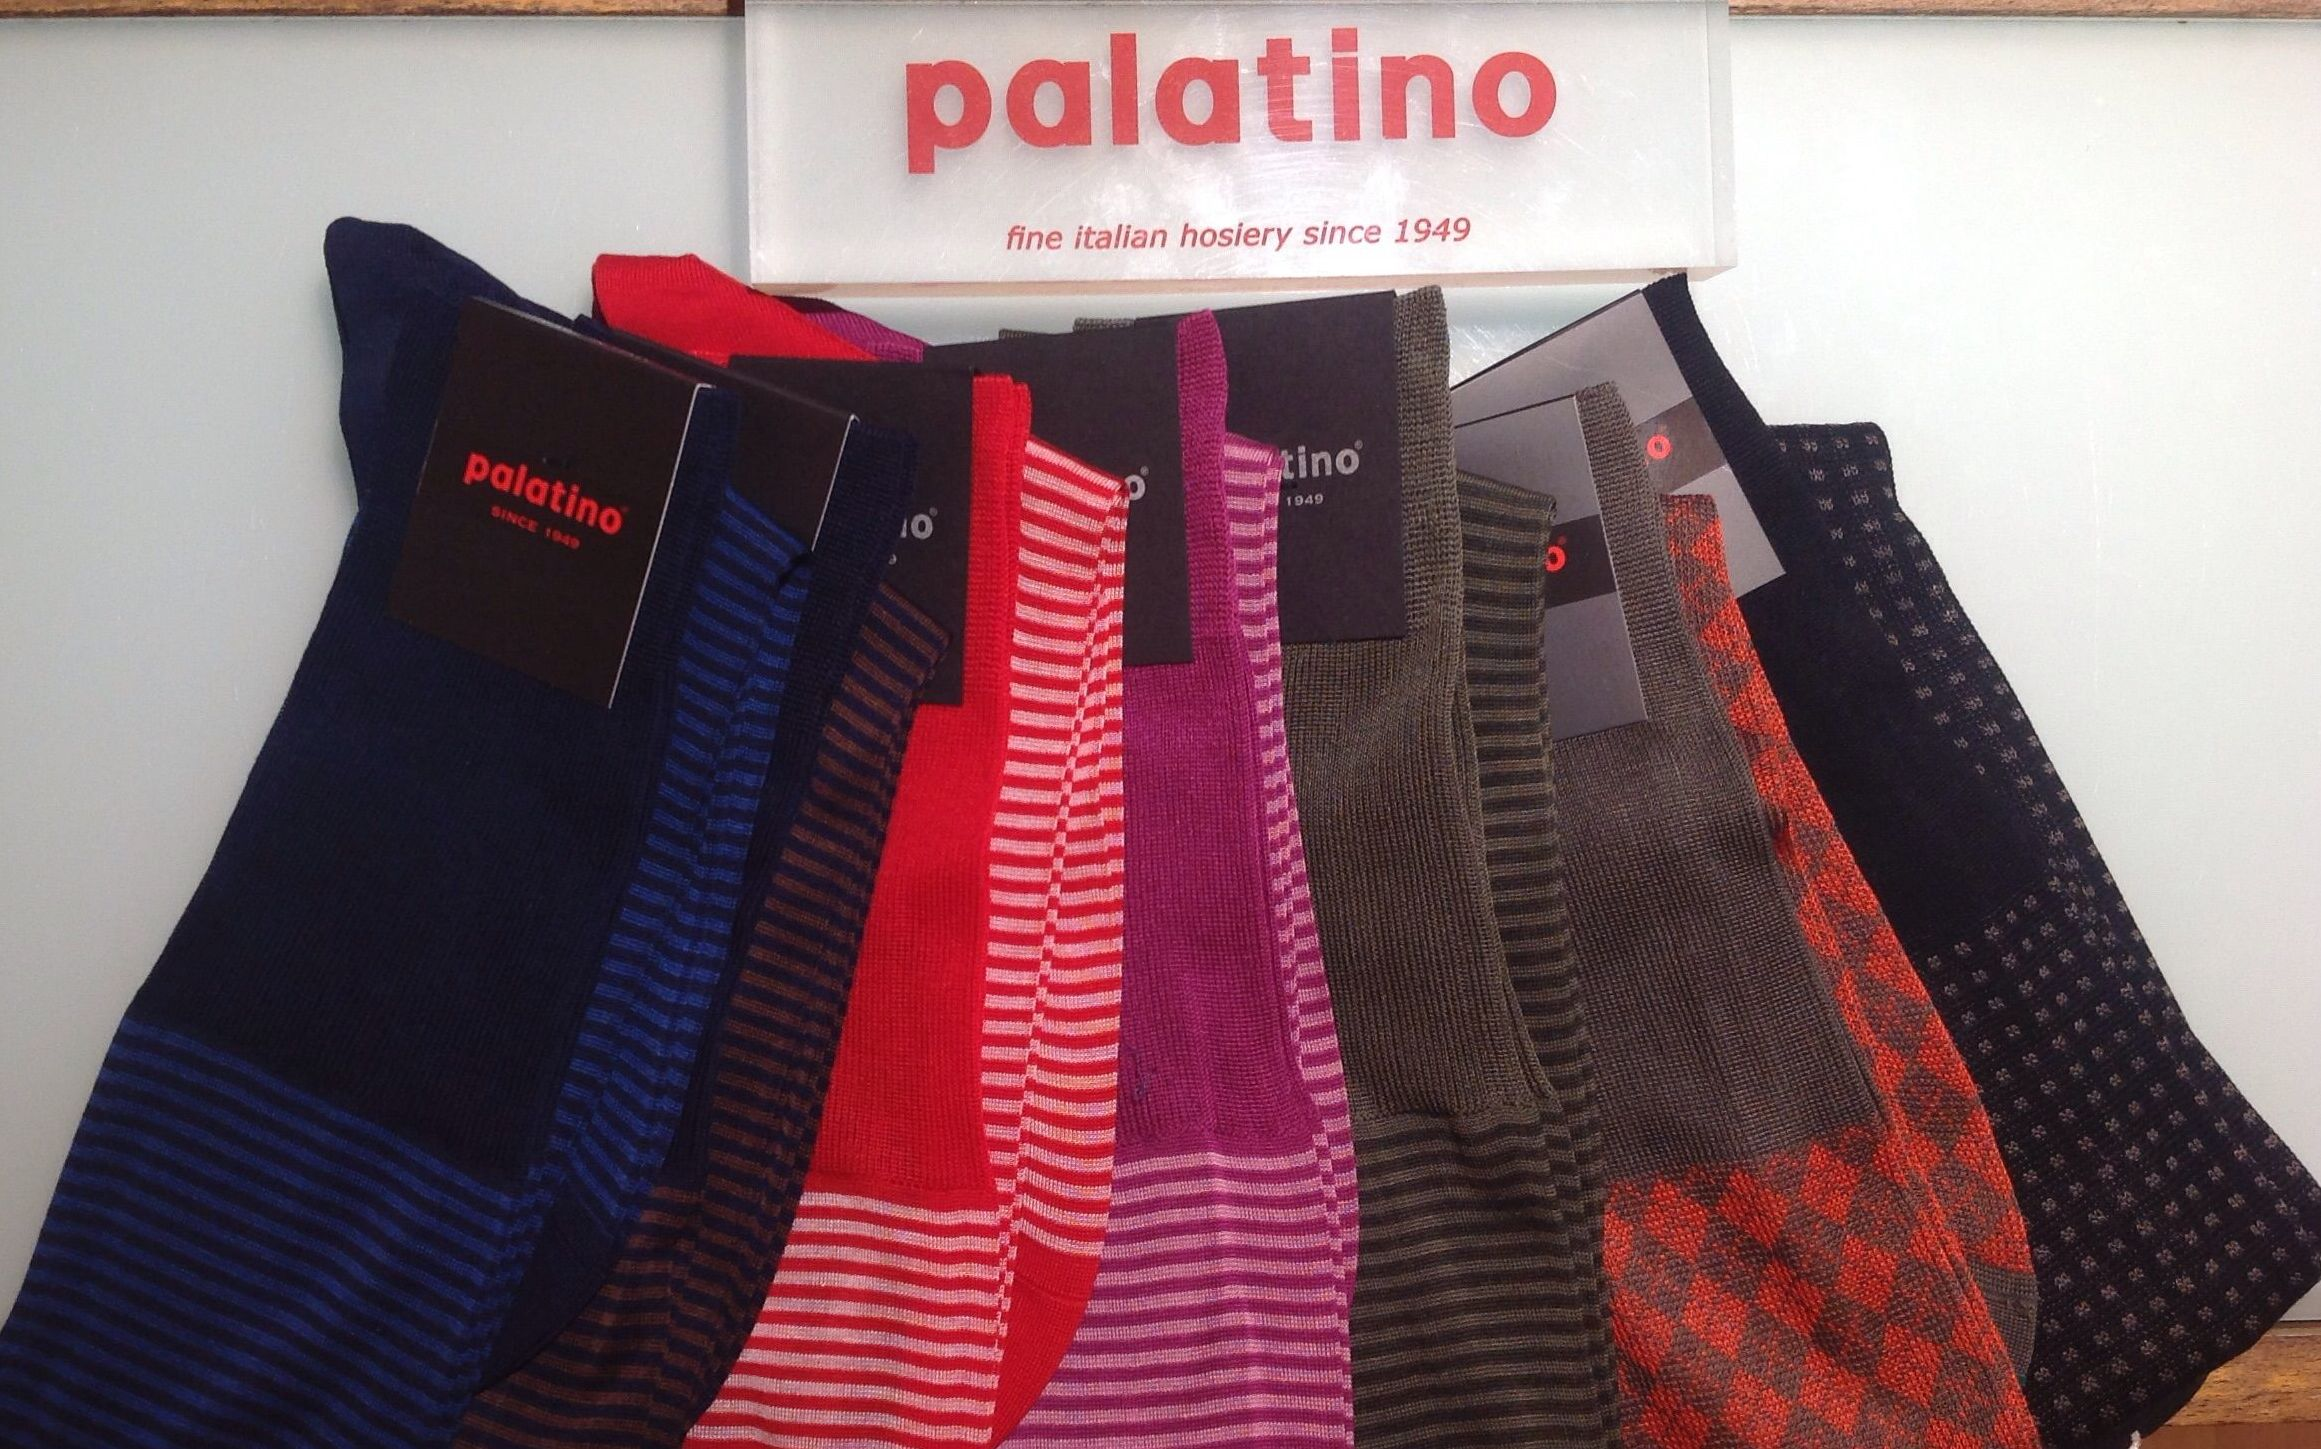 Calcetines Palatino (Made in Italy): Productos de Tubet Zapateros